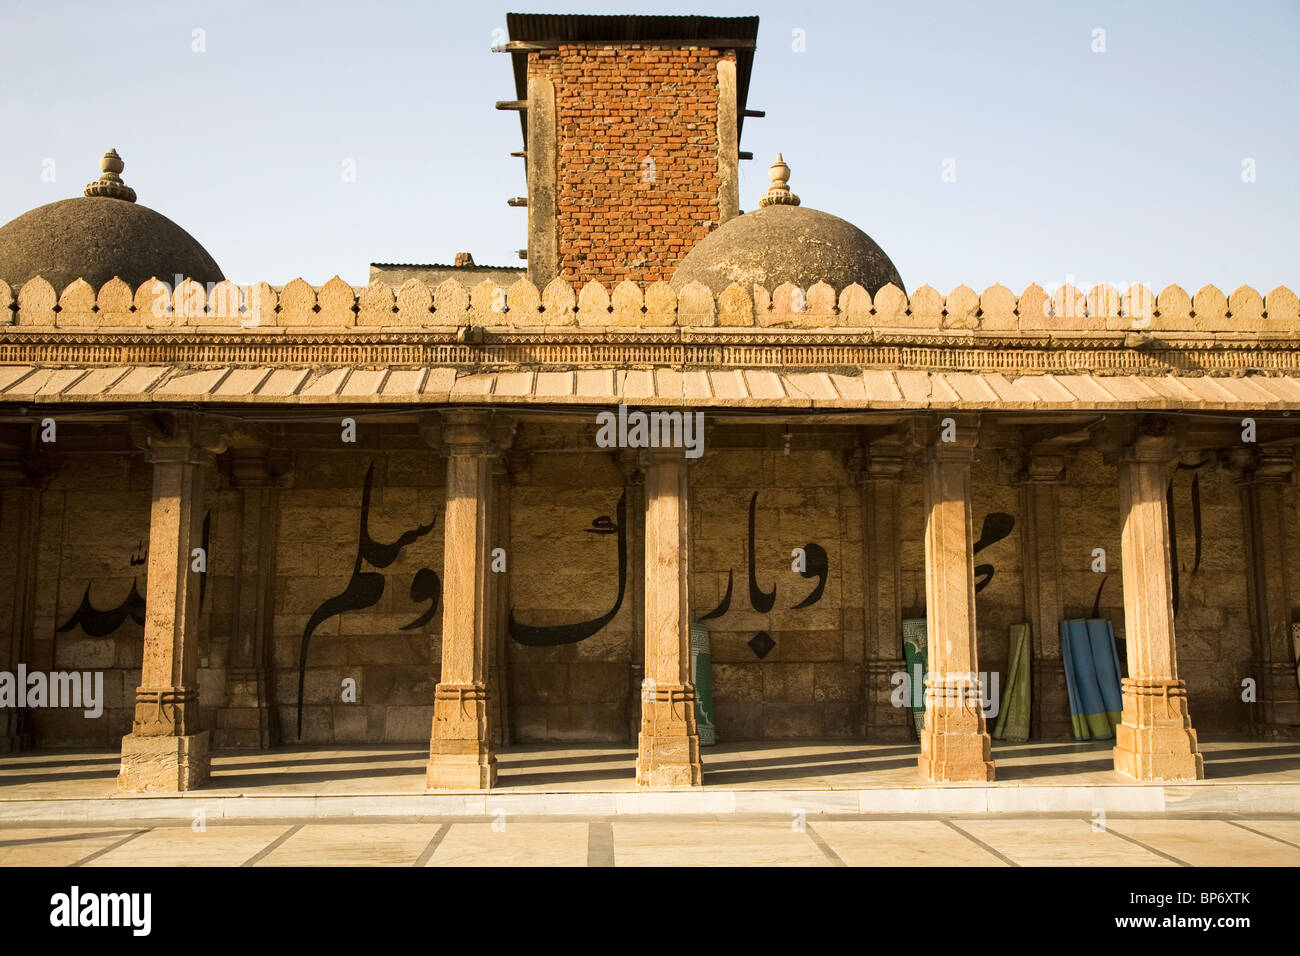 A Koranic inscription runs behind pillars in the Jama Masjid (Friday Mosque) in Ahmedabad, Gujarat, India. - Stock Image